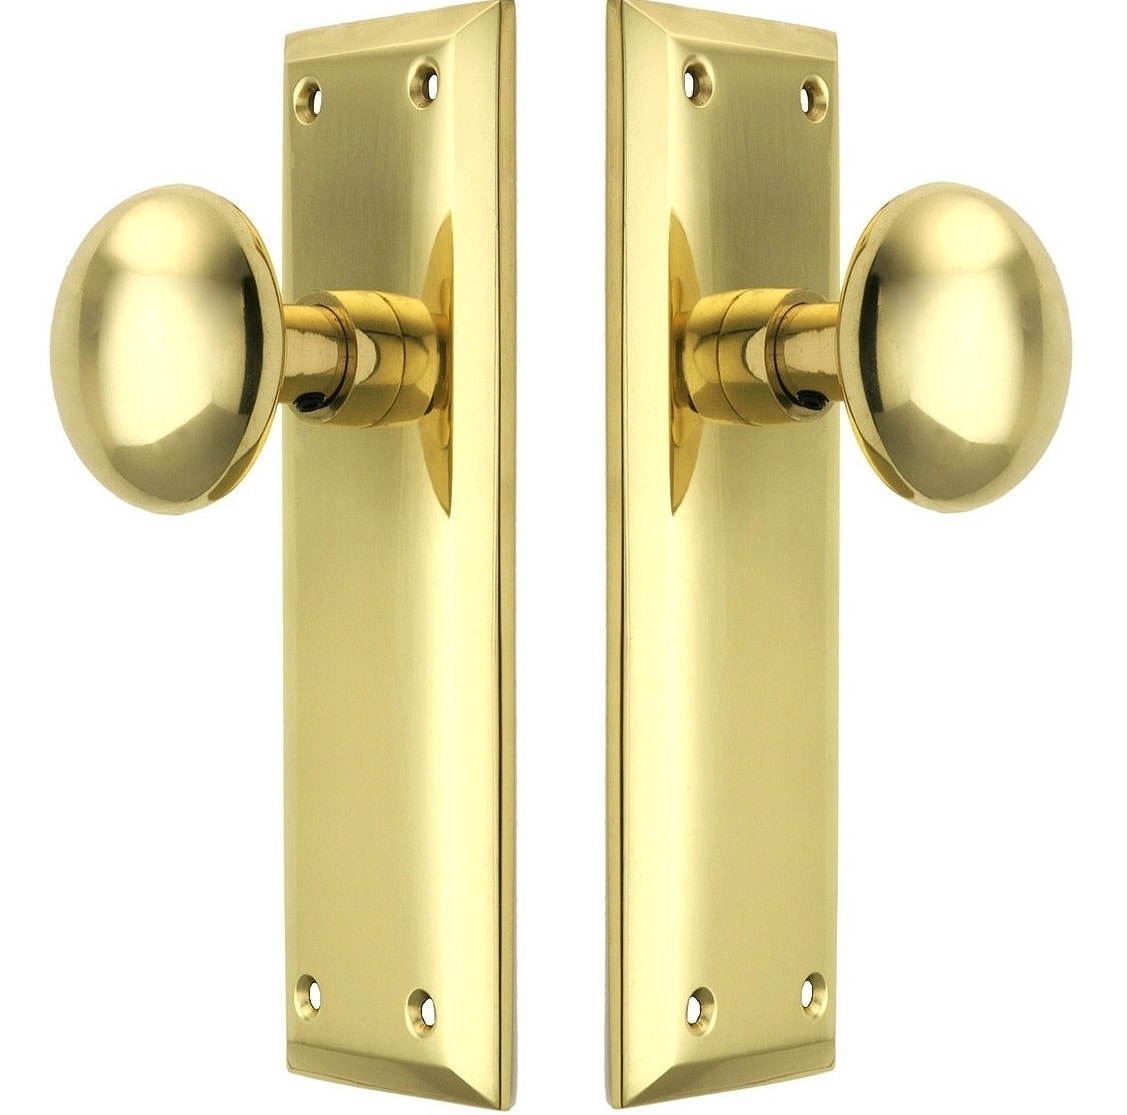 Brass Handle Plate- Antique Hardware style